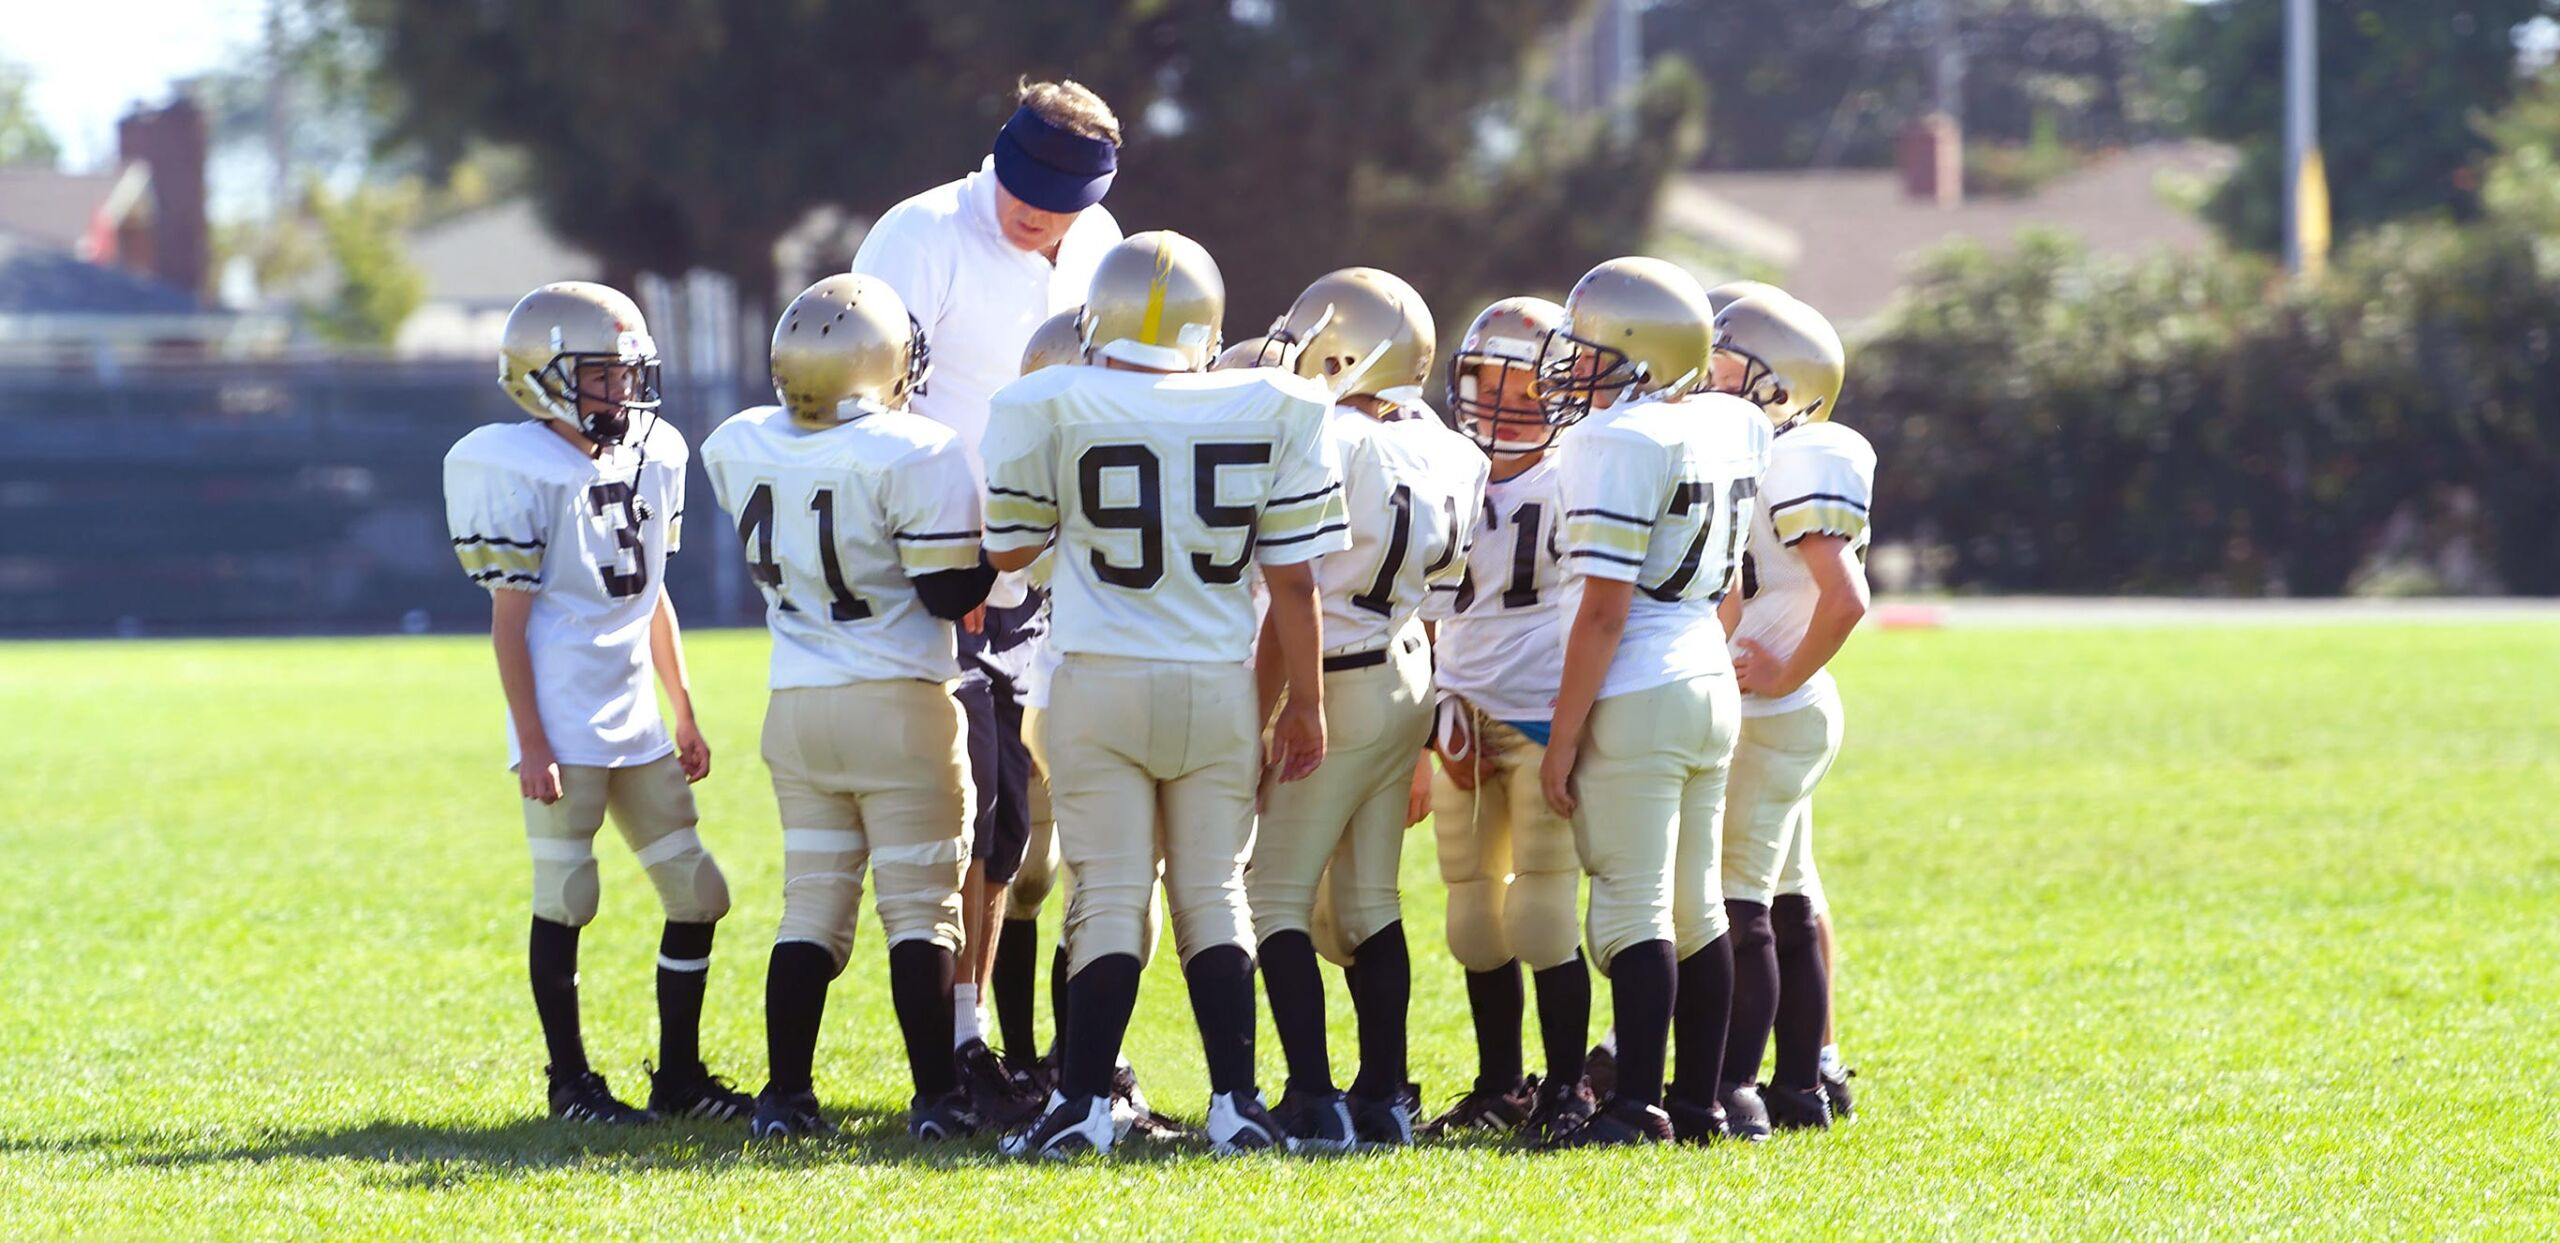 Elementary school football players huddle with their coach.